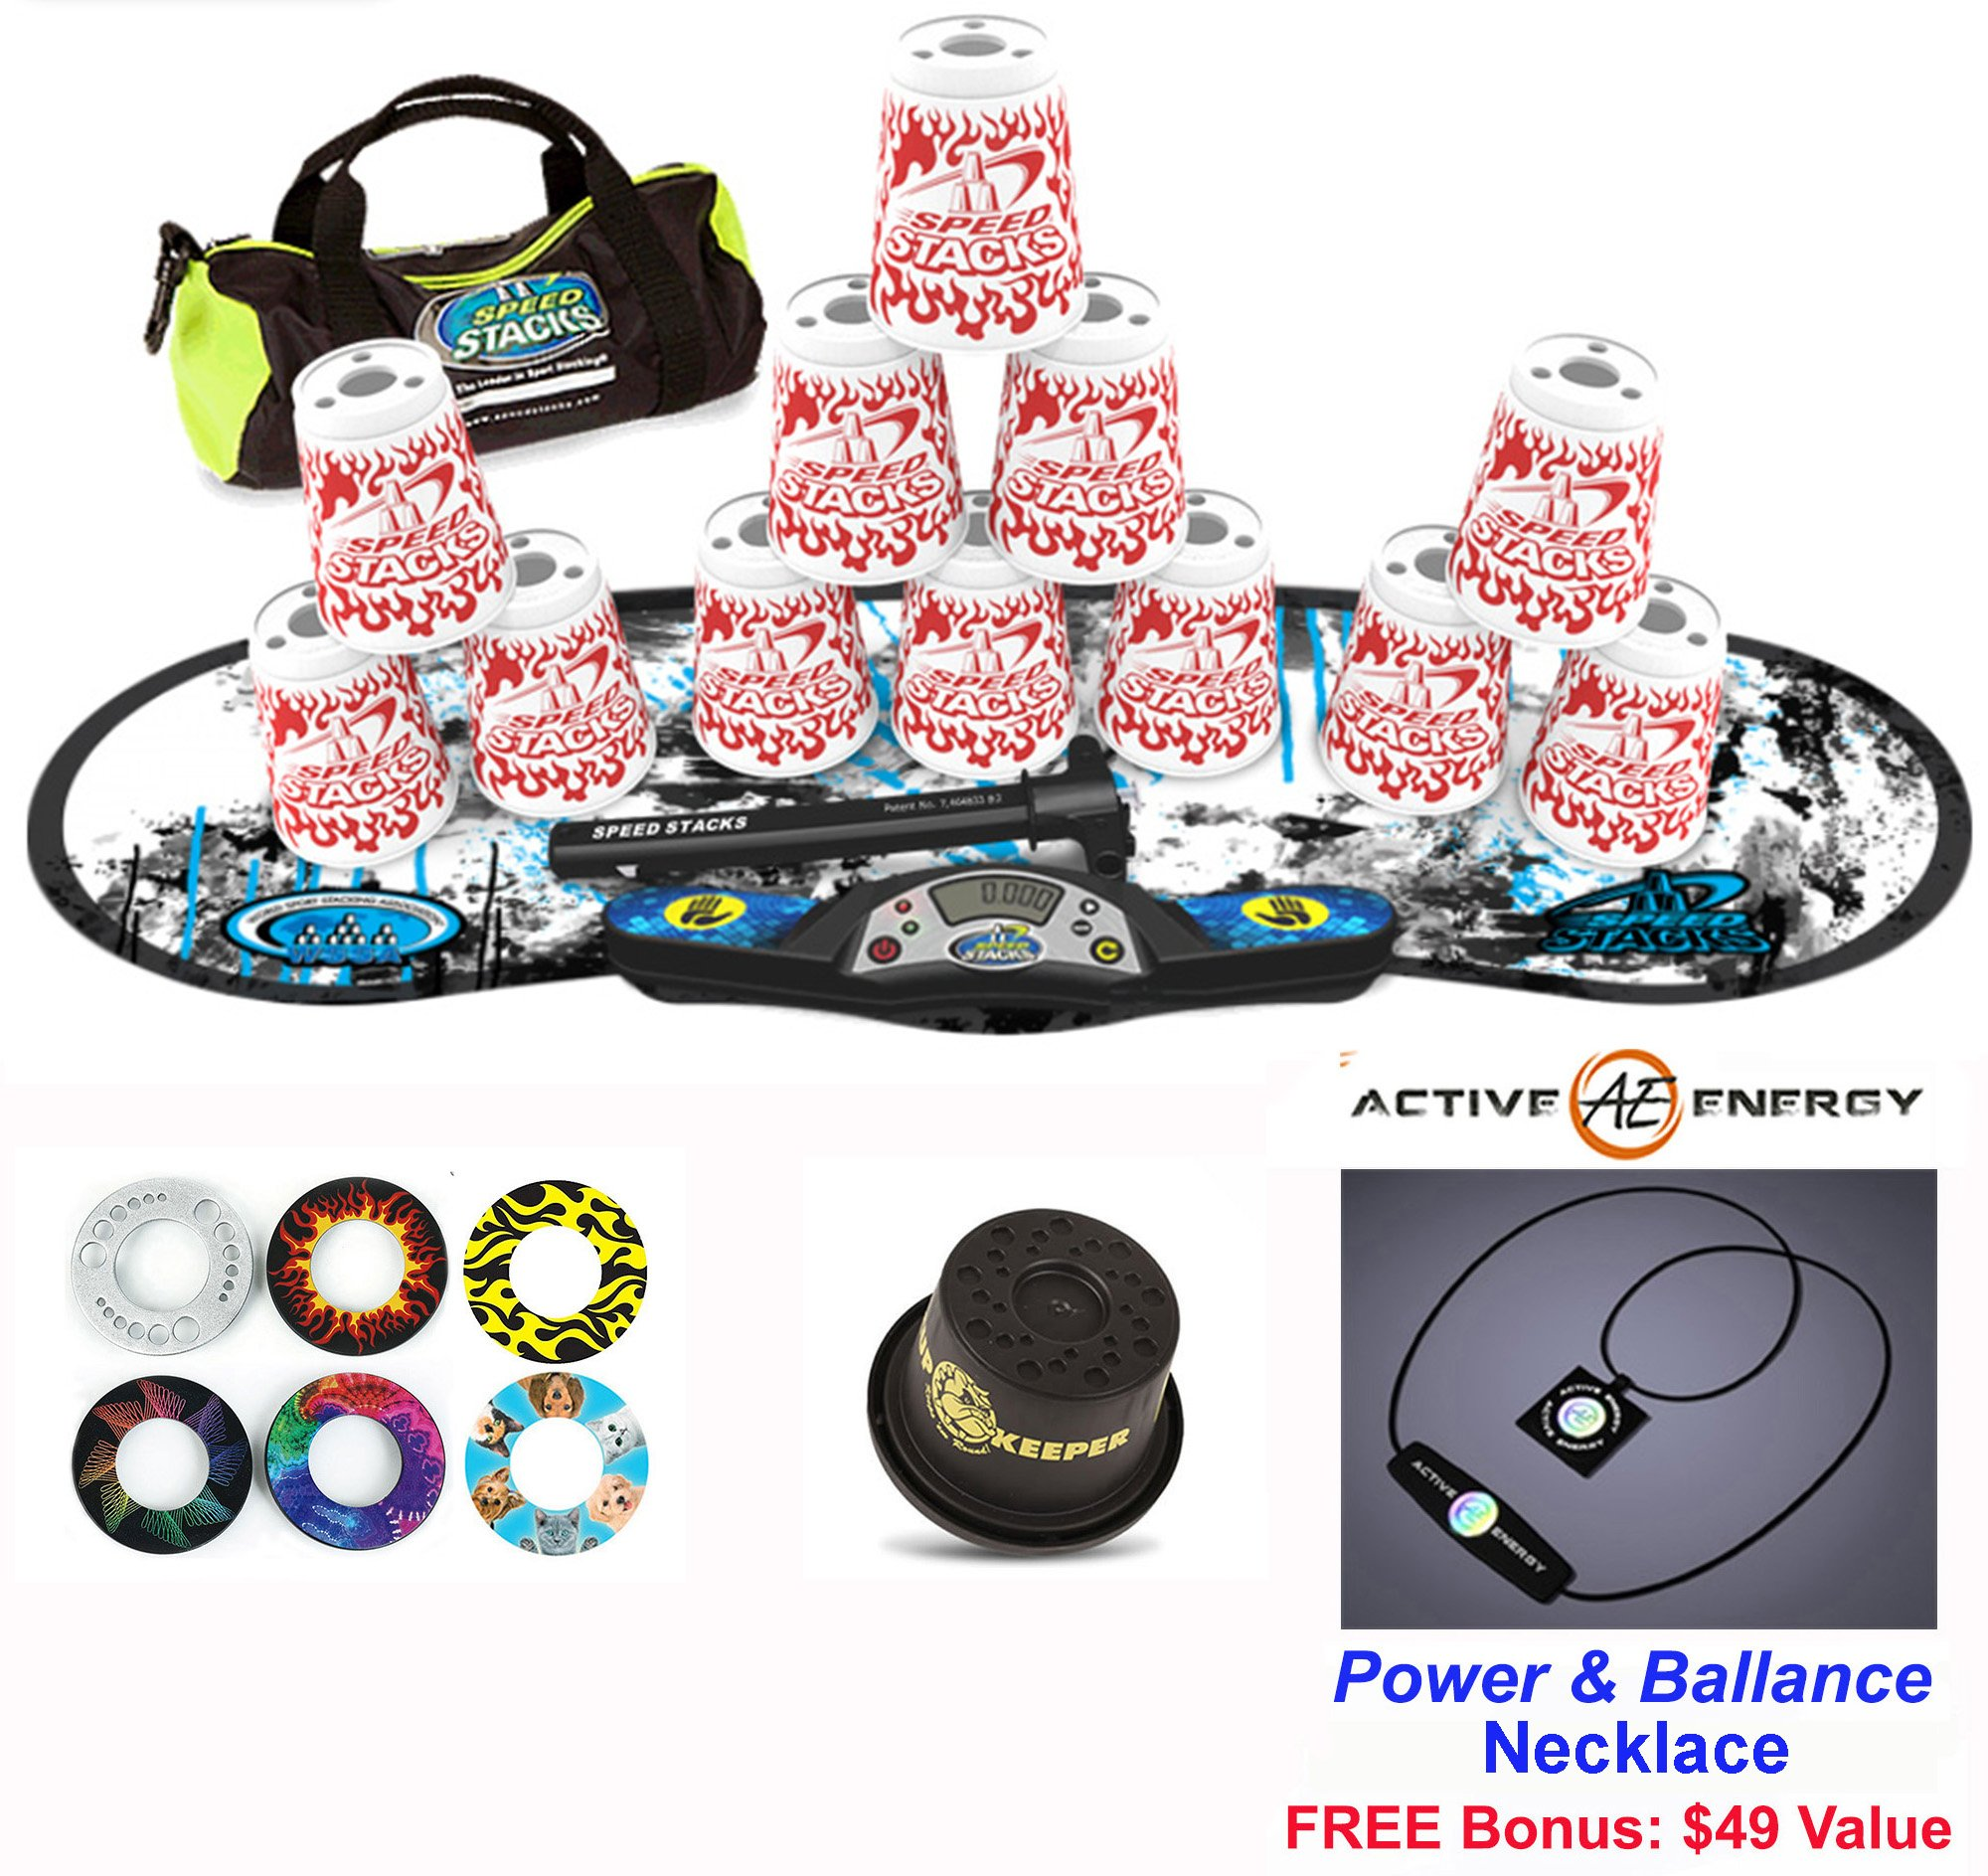 Speed Stacks Combo Set ''The Works'': 12 WHITE FLAME 4'' Cups, REBEL MUDD Gen 3 Mat, G4 Pro Timer, Cup Keeper, Stem, Gear Bag + Active Energy Necklace